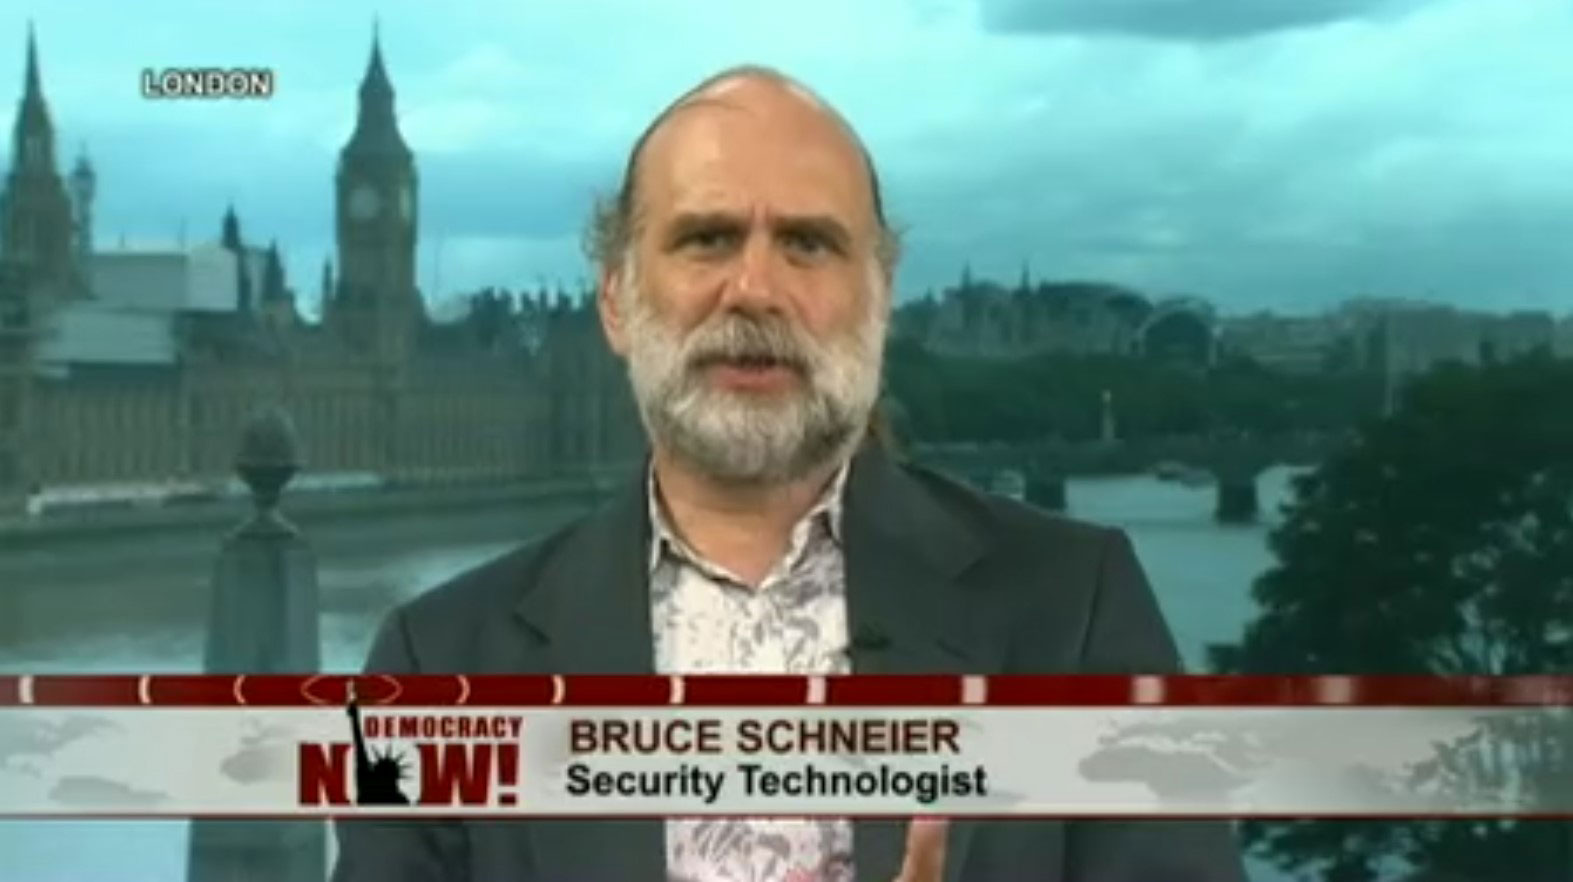 Bruce Schneier on Democarcy Now